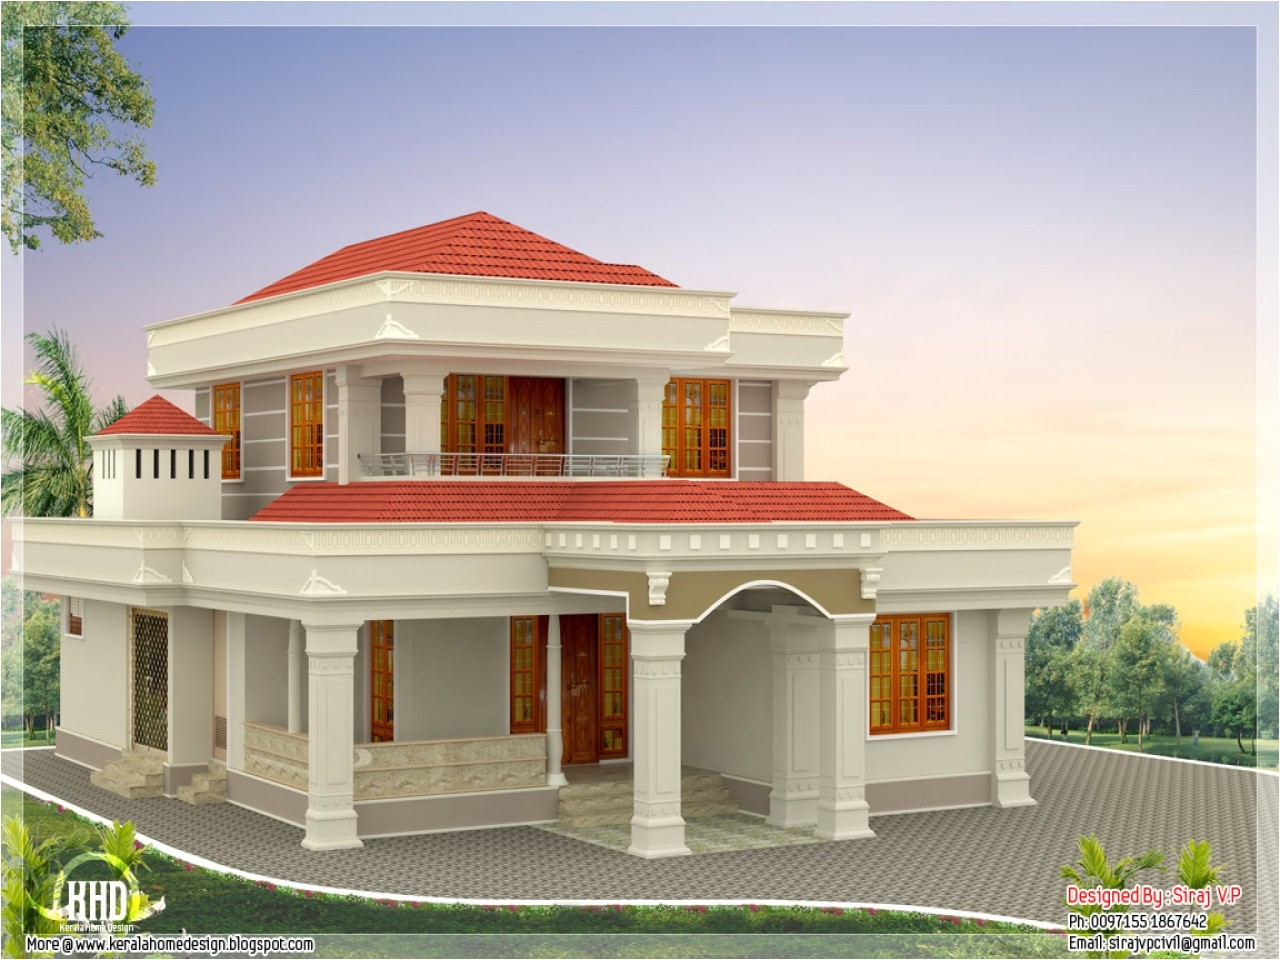 2c13e8cd250e8013 old indian houses small indian house designs